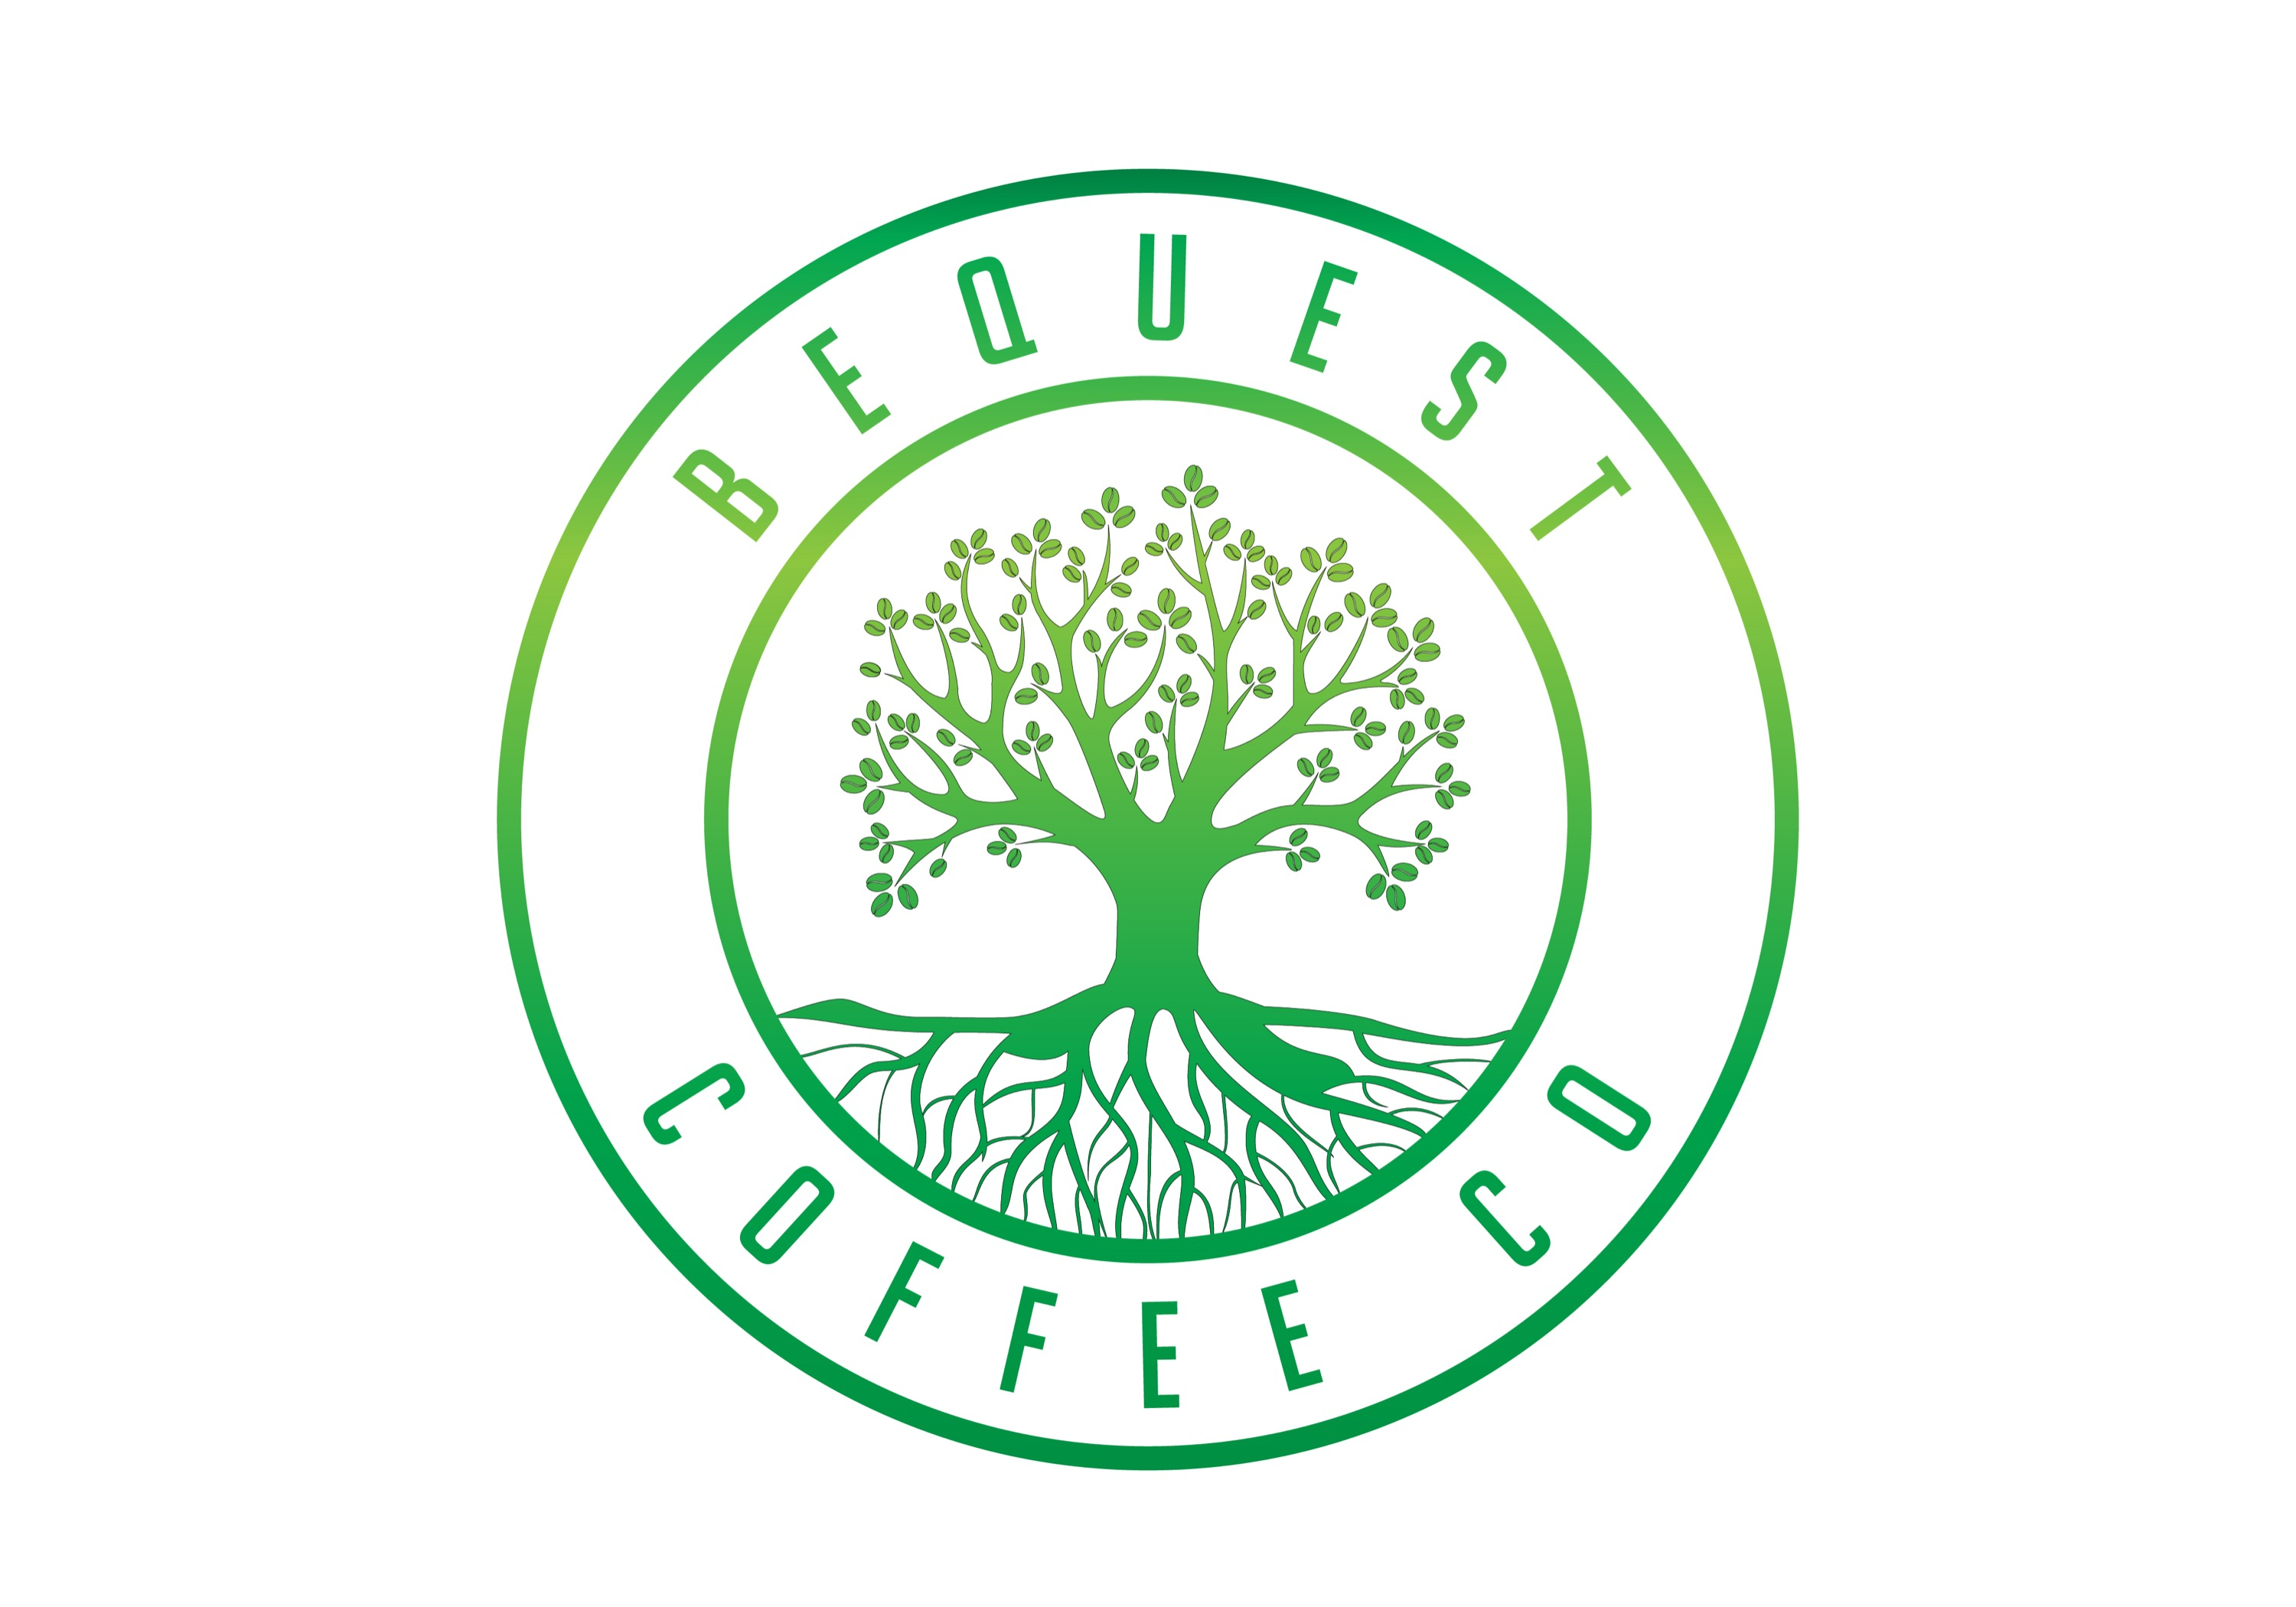 Bequest%20Coffee%20Co%20Logo%20(1)-02_ed